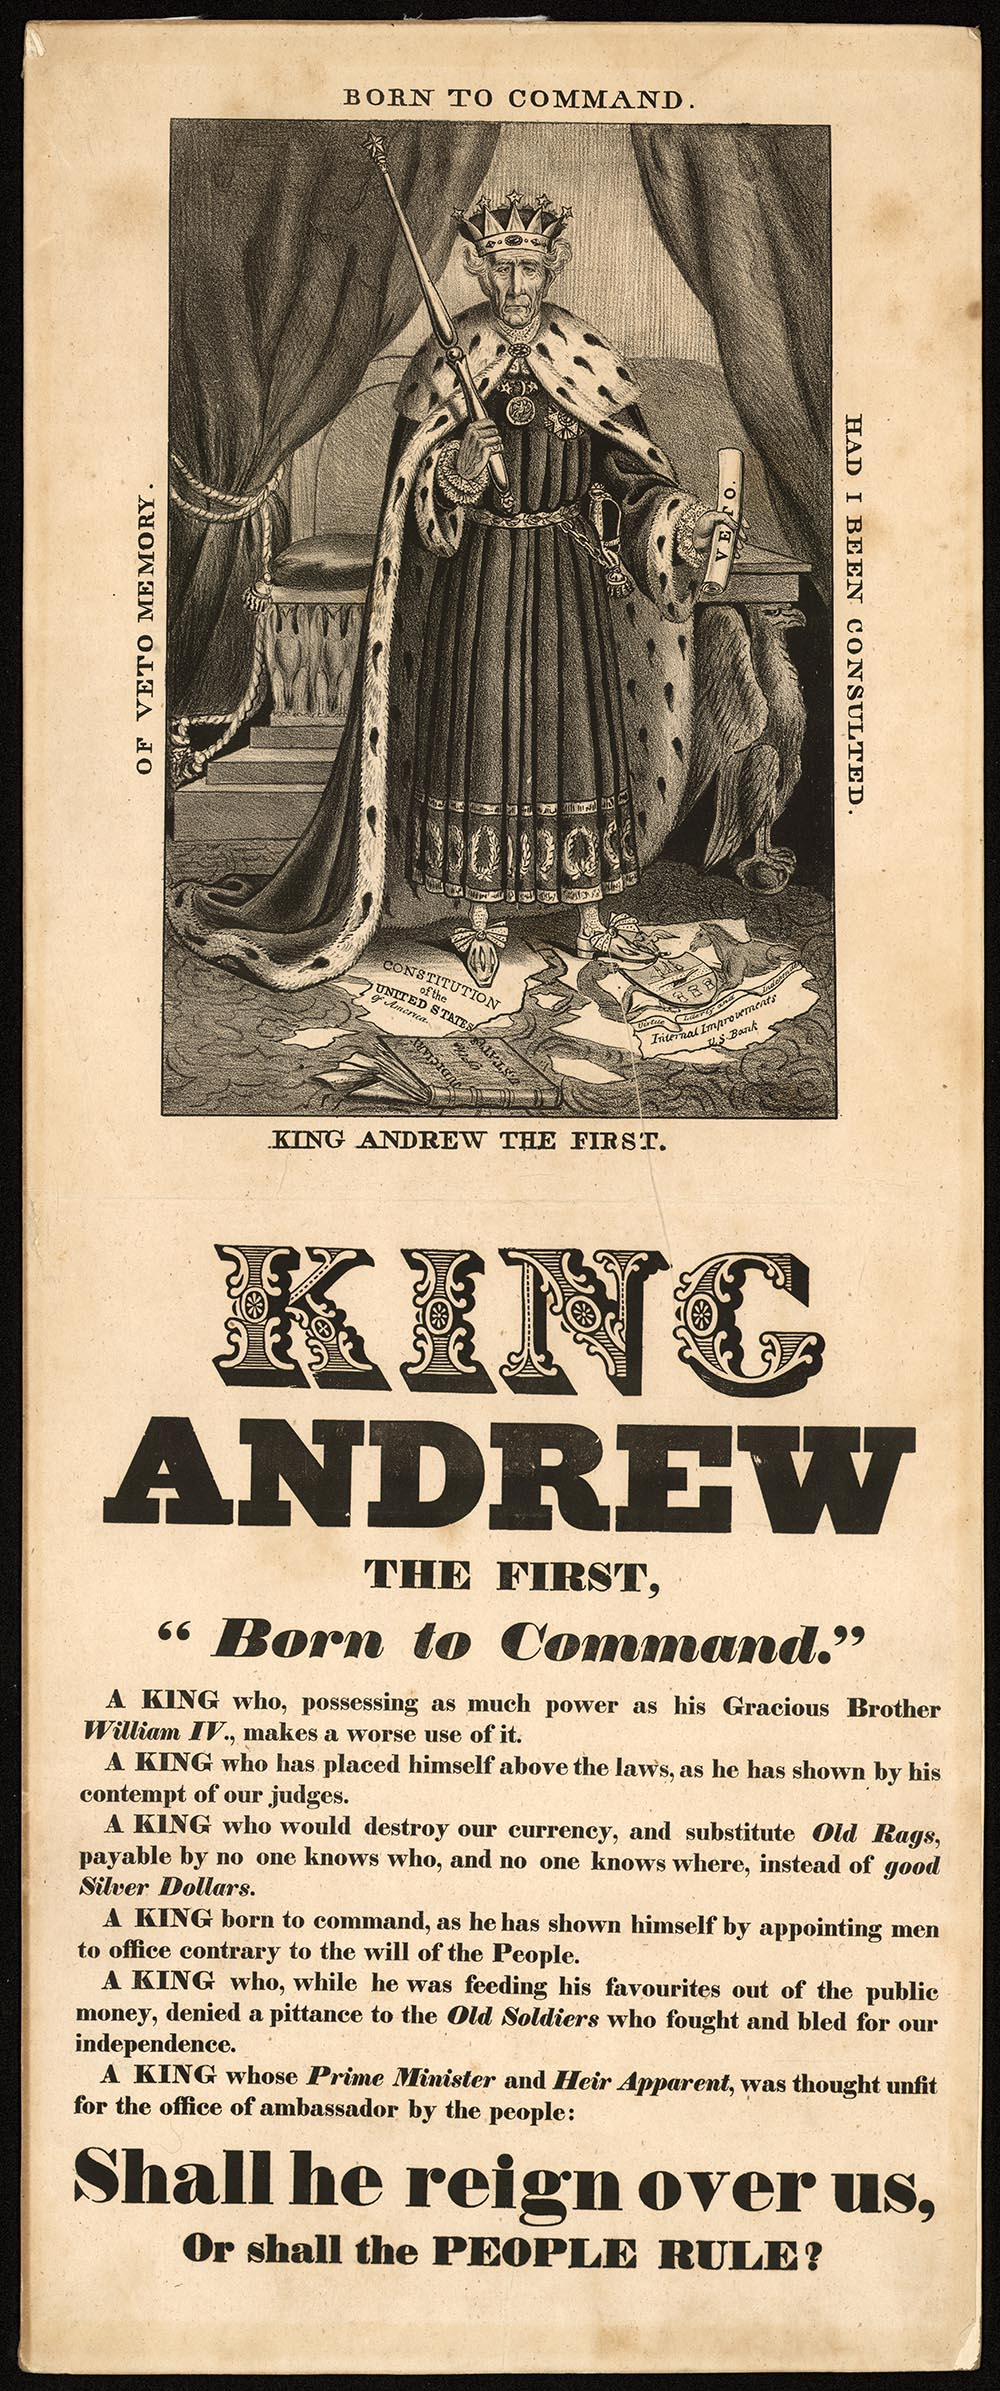 King Andrew the First, a political cartoon criticizing President Andrew Jackson